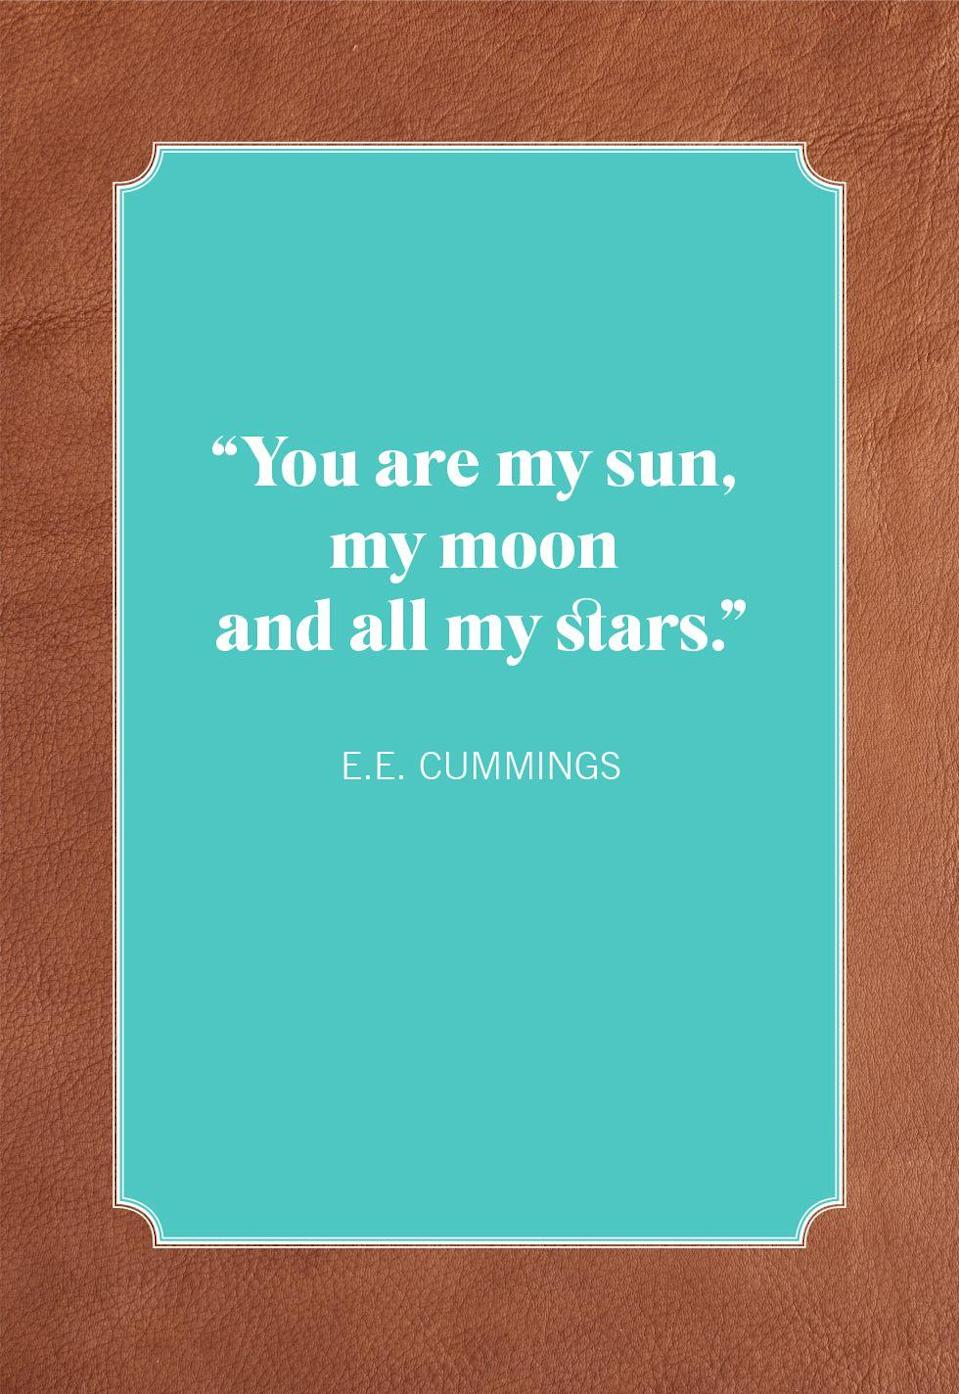 "<p>""You are my sun, my moon and all my stars.""</p>"